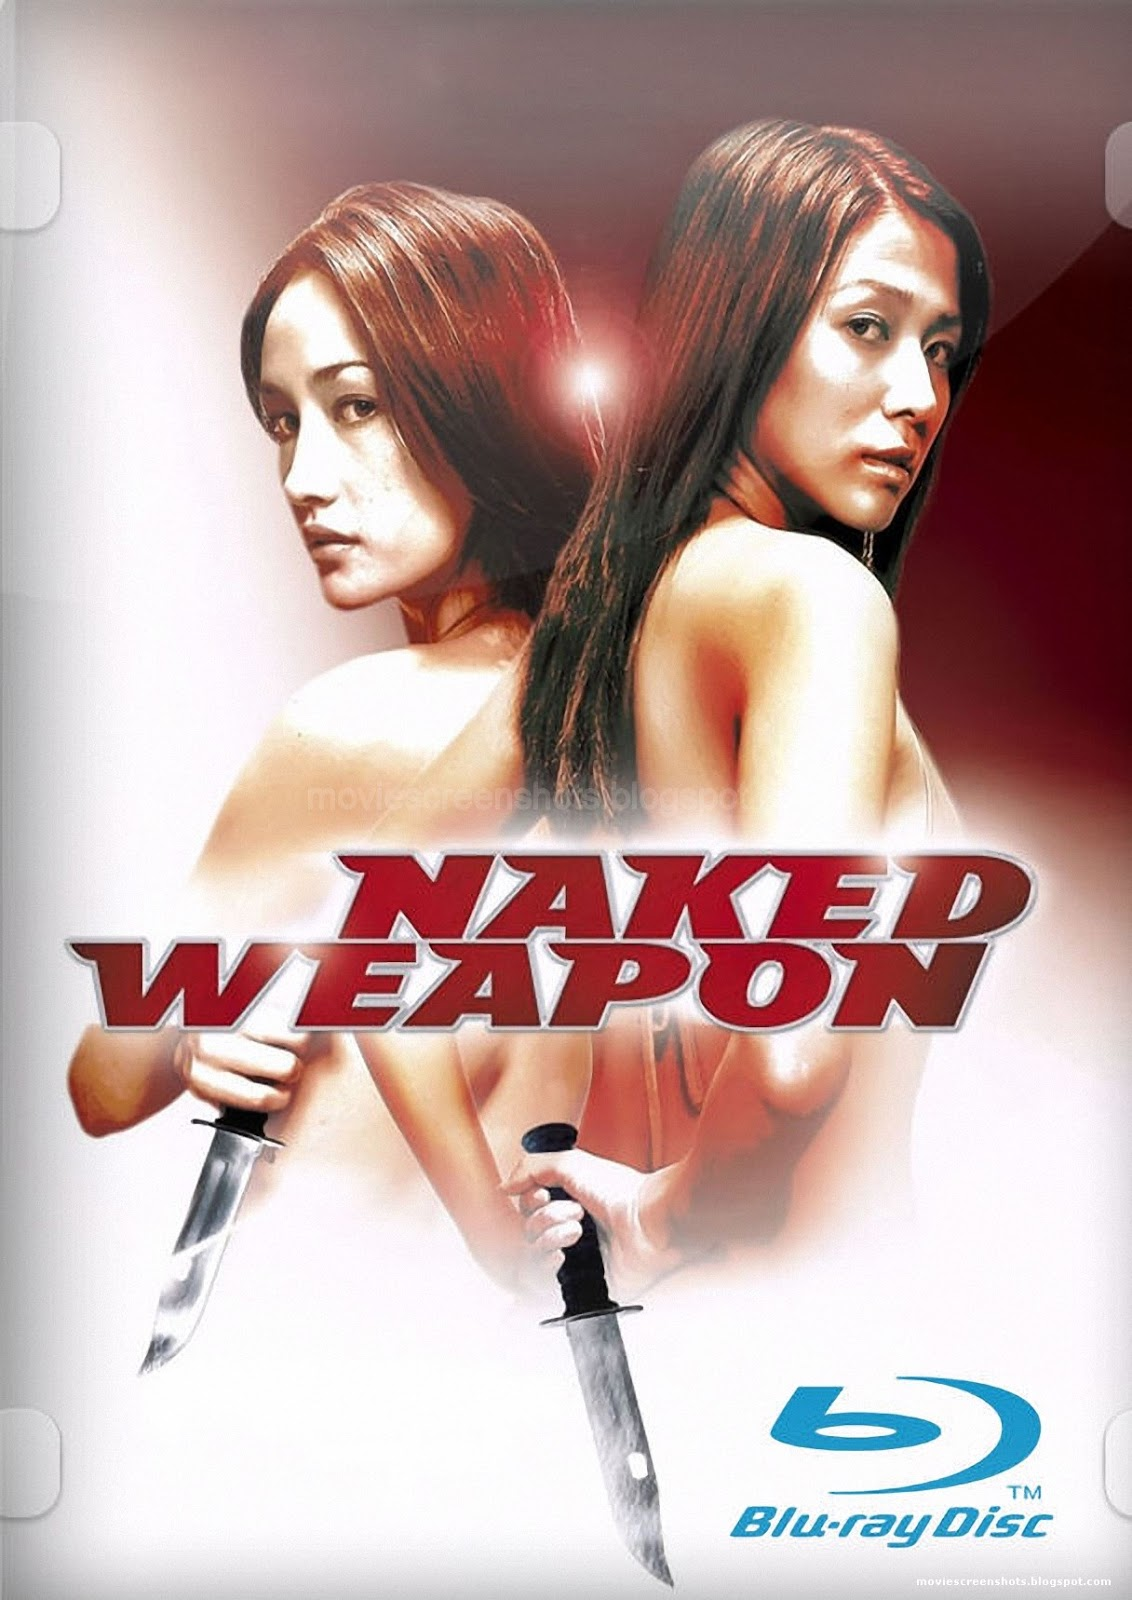 Naked Weapon (2002)